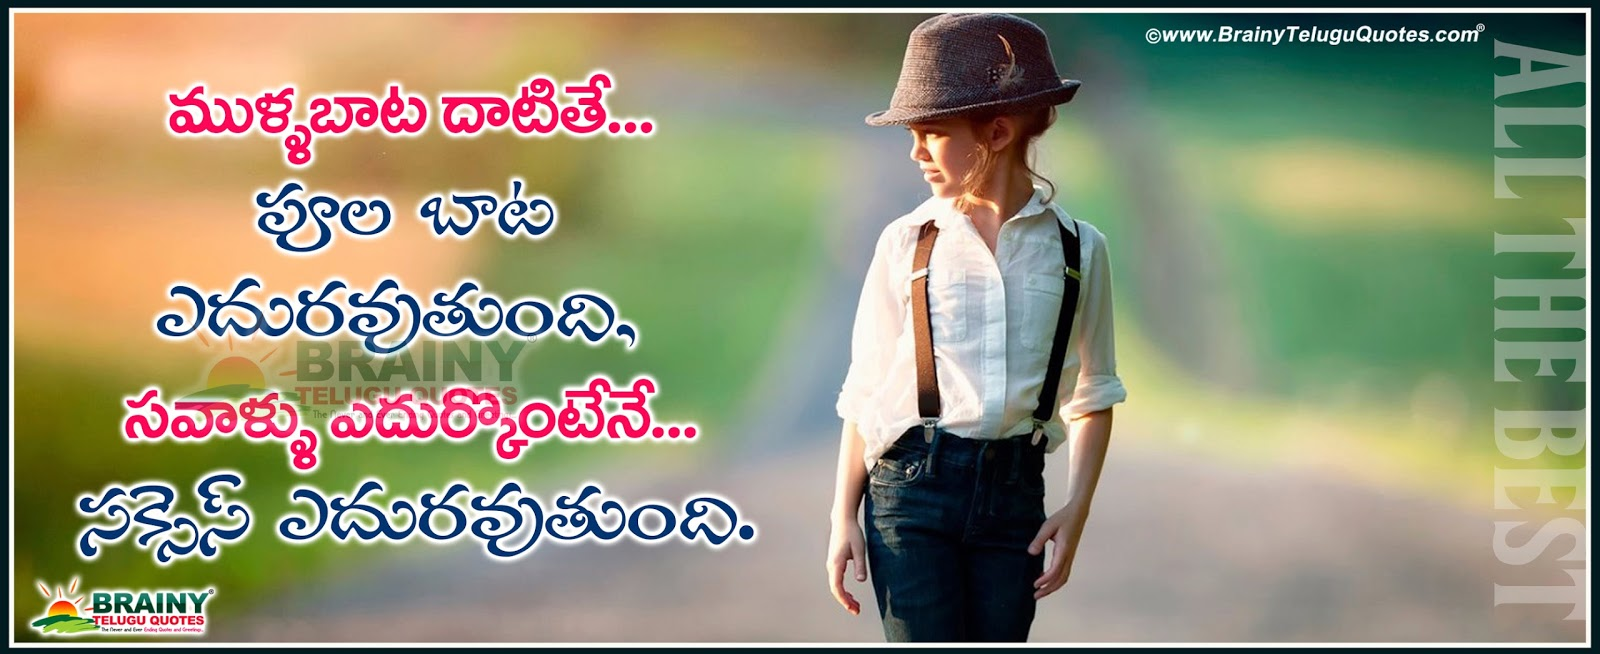 New Telugu Good Morning Status Quotes Hd Wallpapers Best Messages For